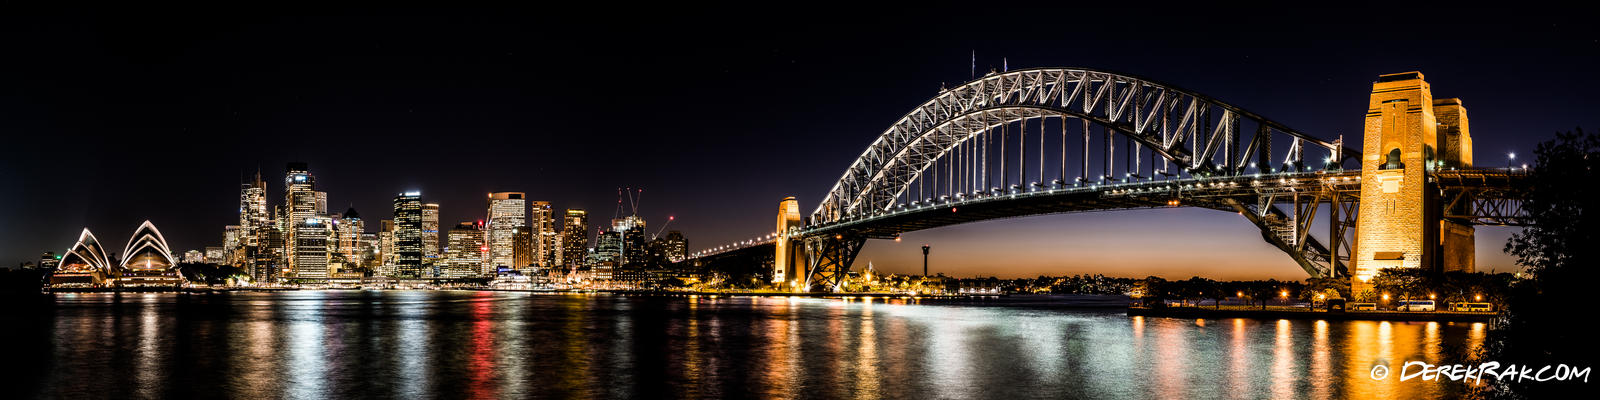 Sydney Harbout Bridge and Opera House at Night by vazagothic